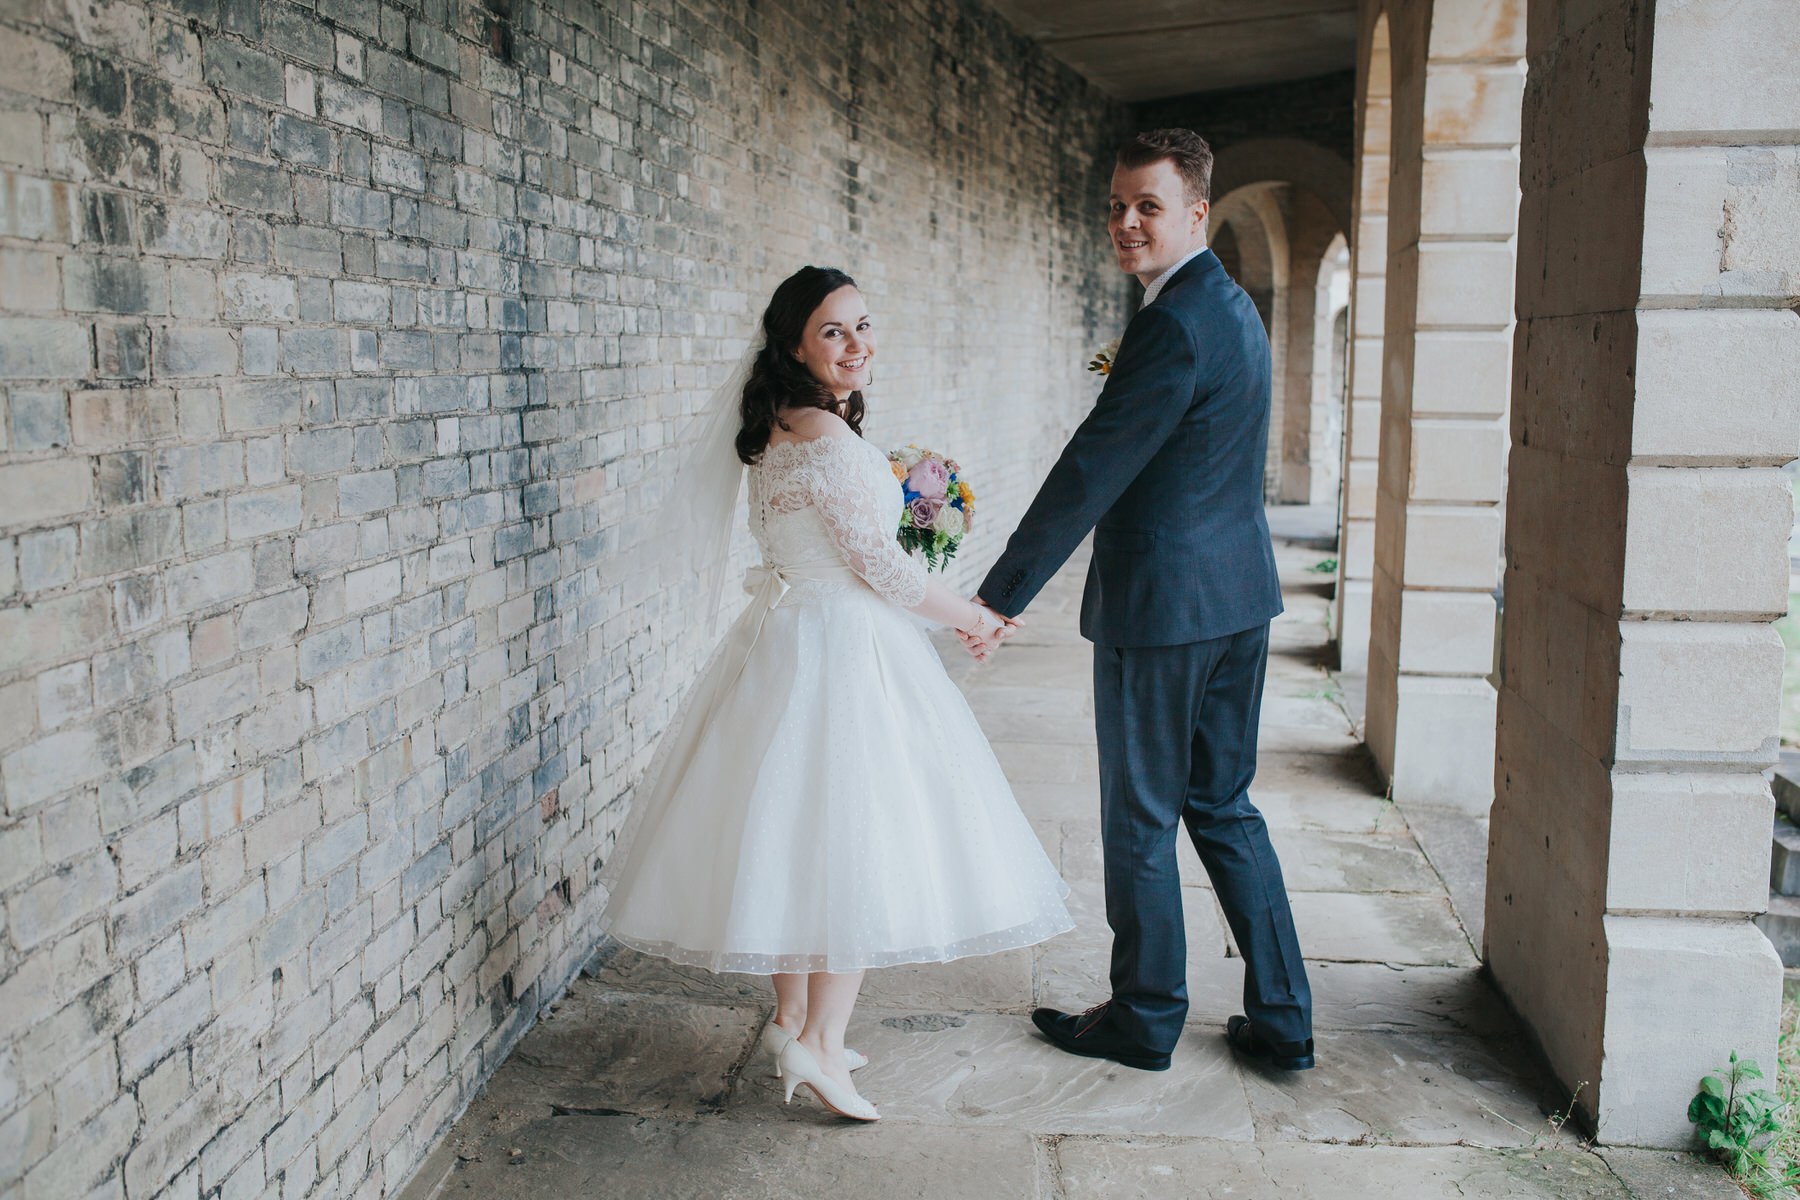 121-groom bride wedding portraits Brompton Cemetery_.jpg